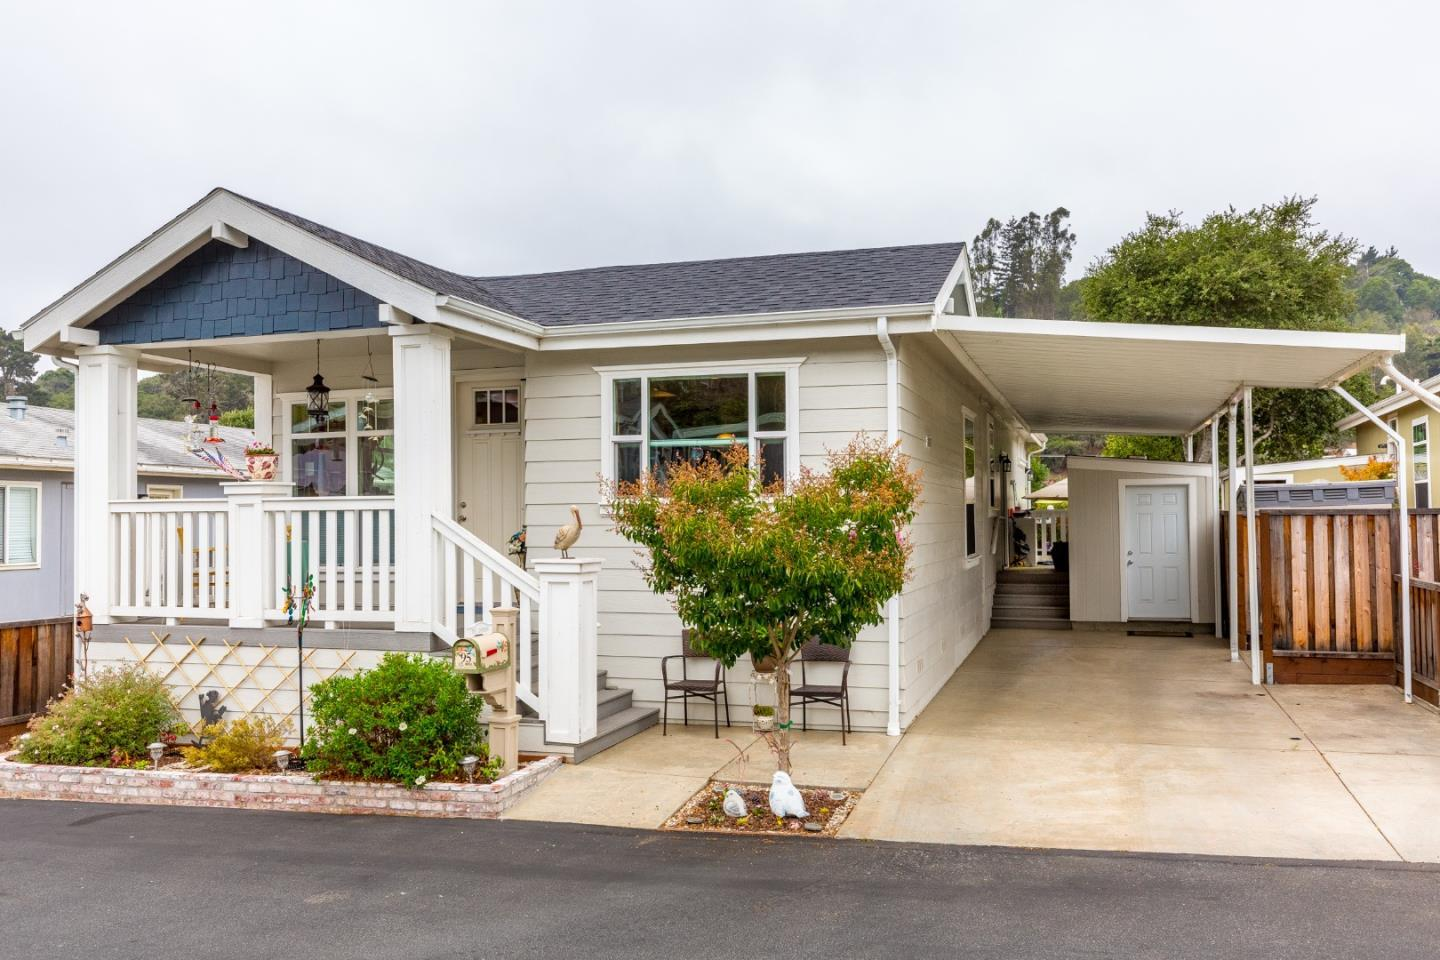 Detail Gallery Image 1 of 1 For 95 Cherry Blossom Ln #95, Aptos, CA, 95003 - 3 Beds | 2 Baths